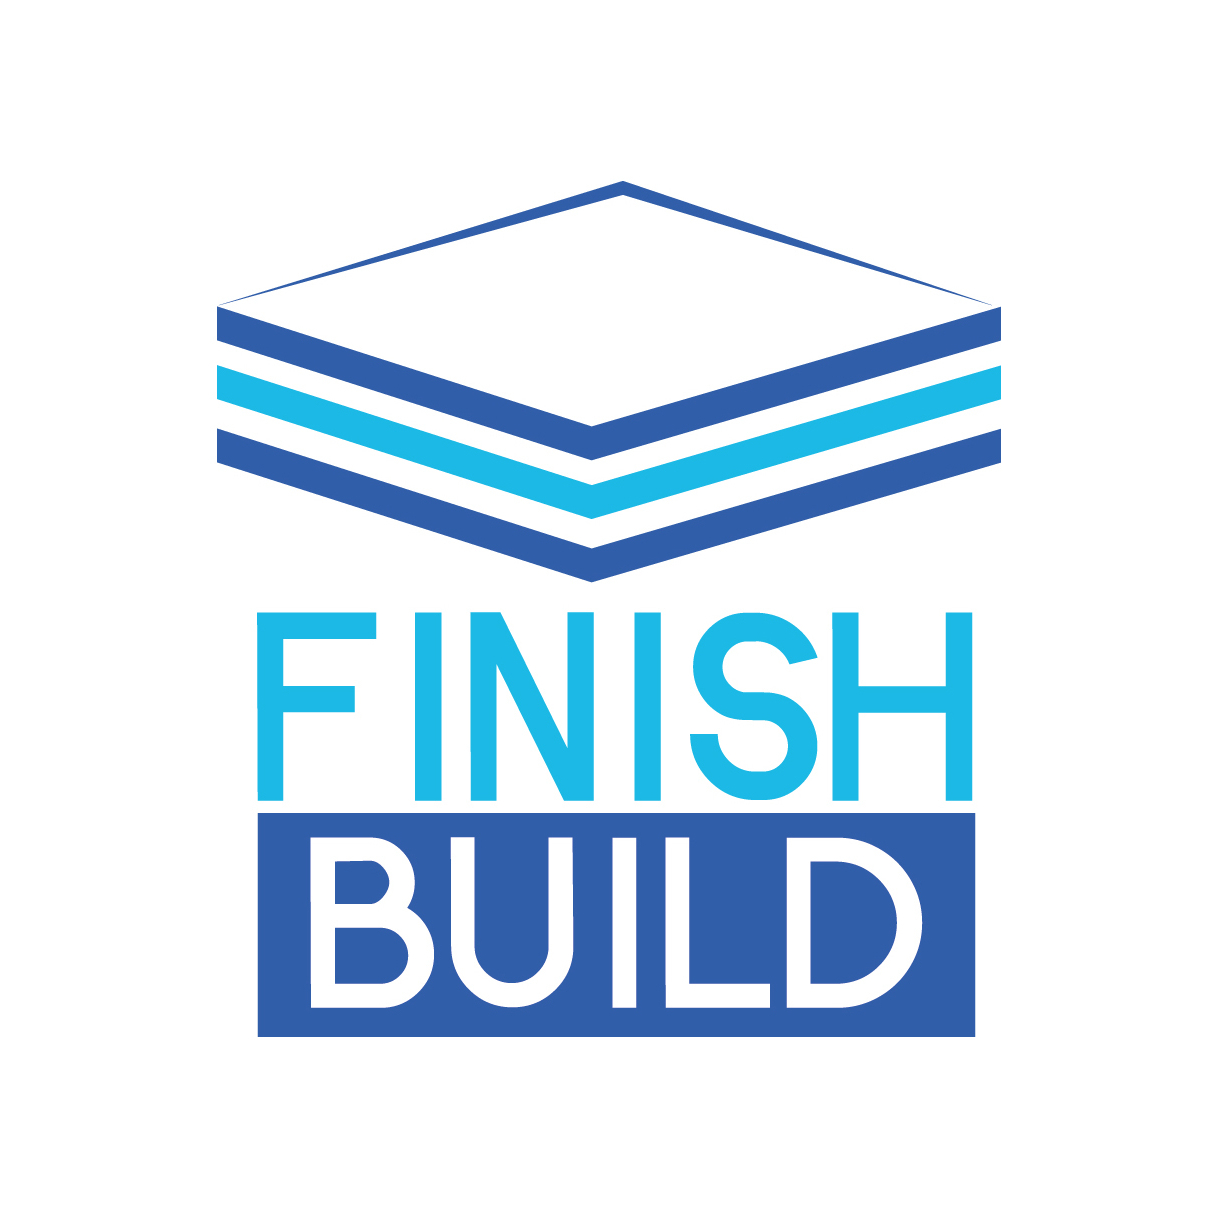 FINISH BUILD